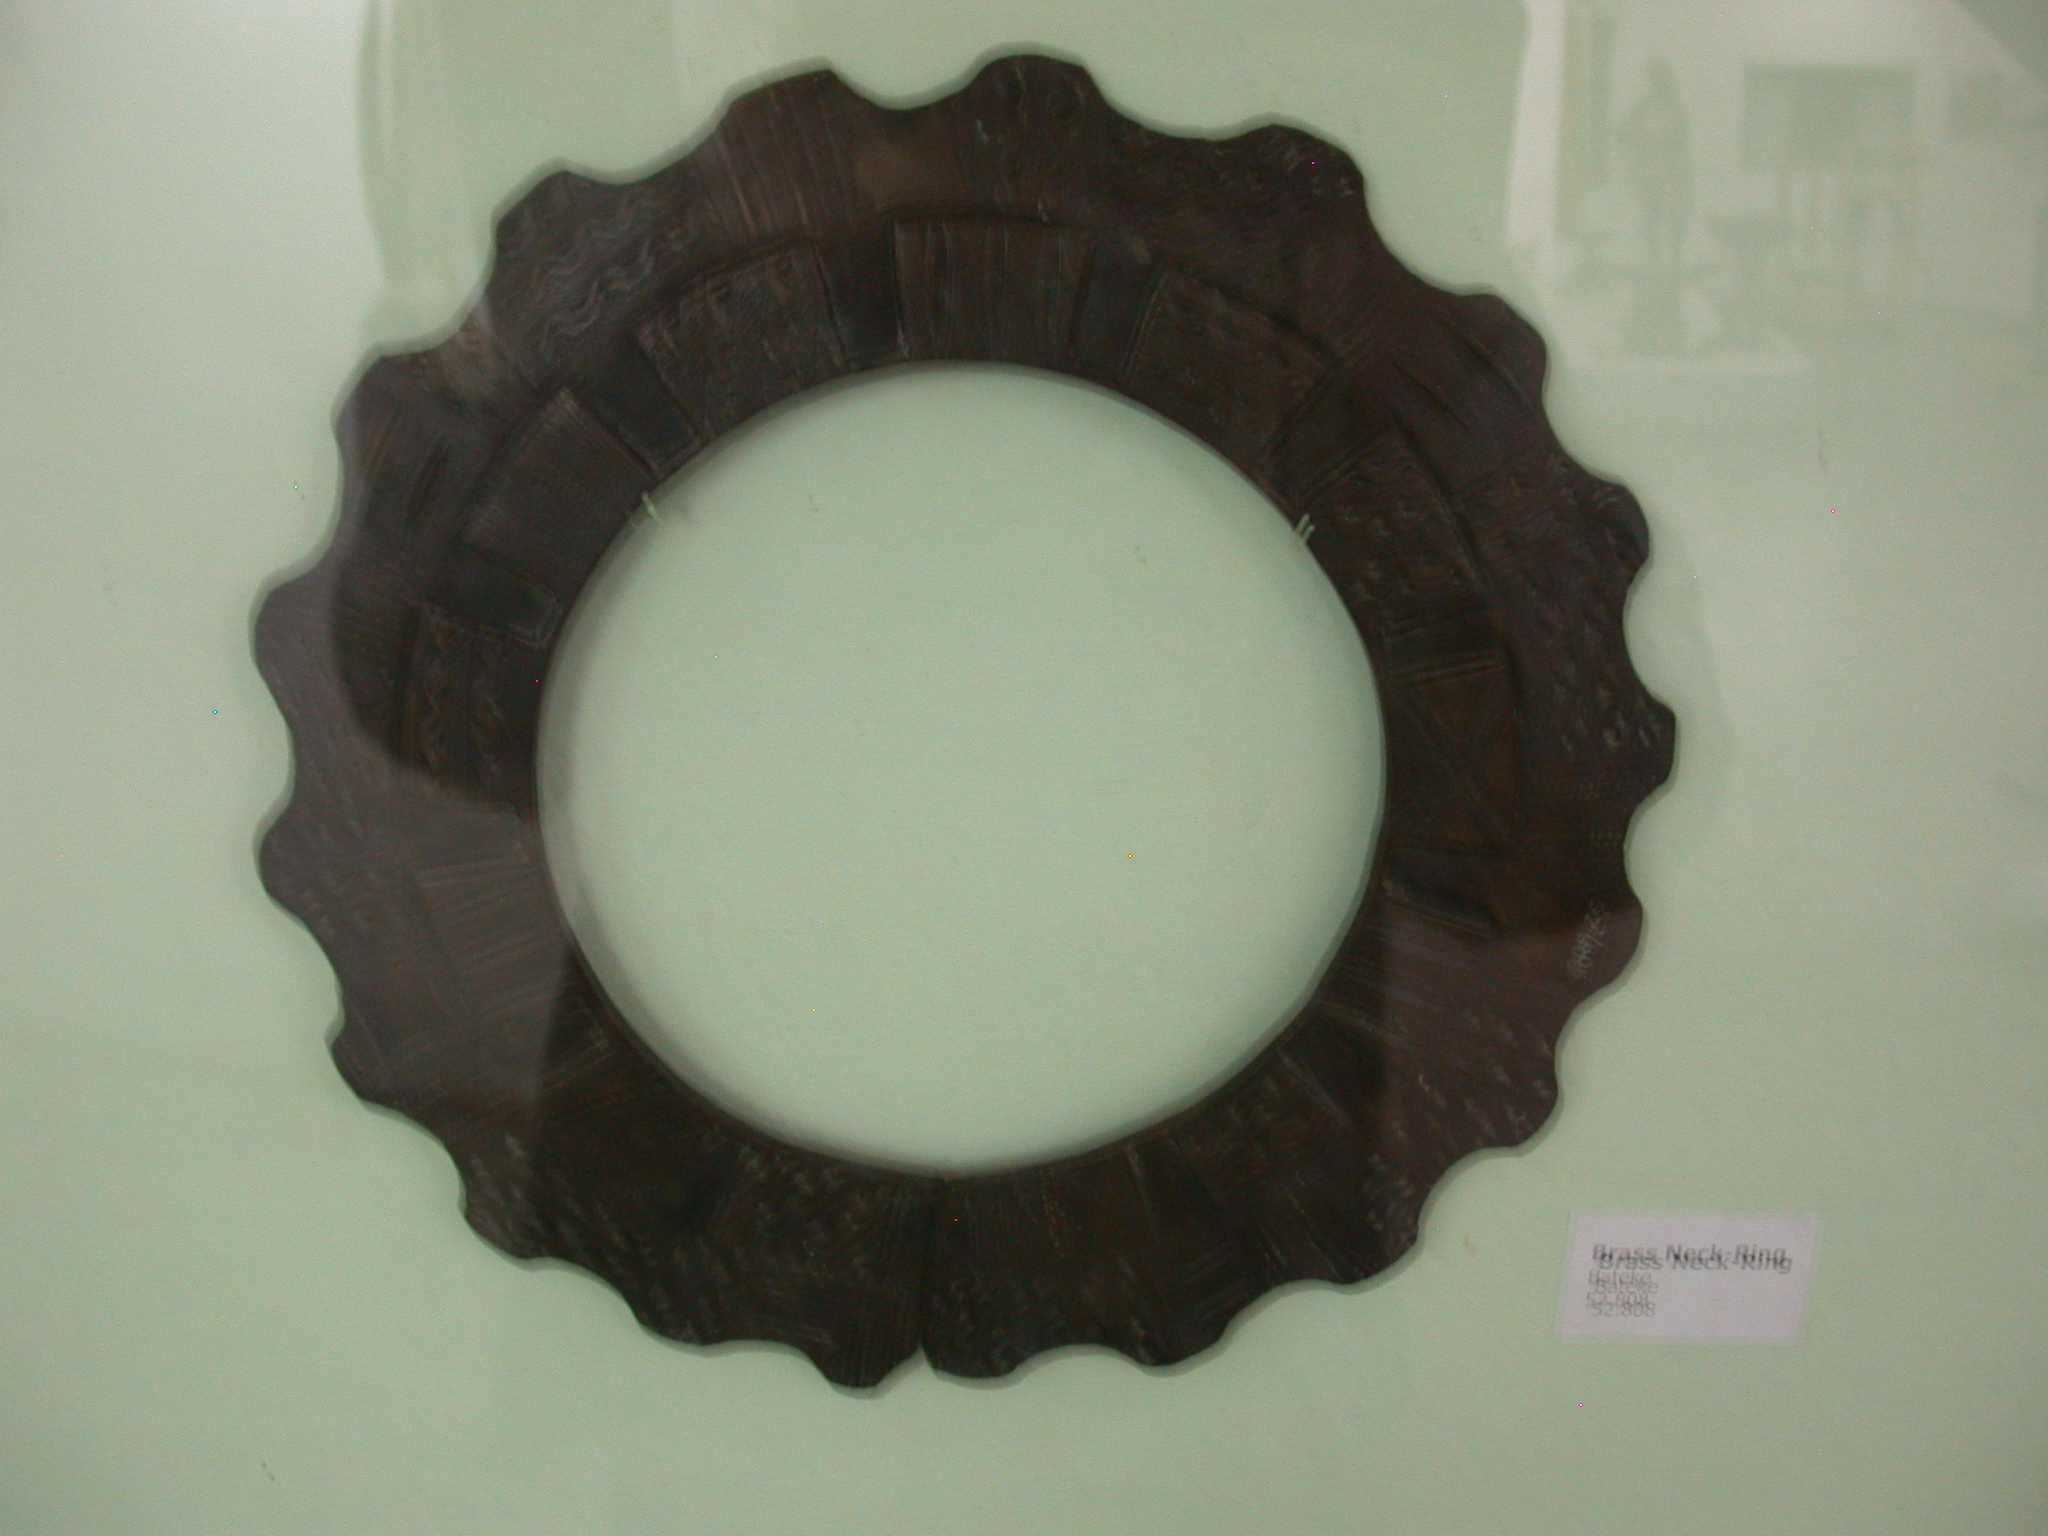 Brass Neck Ring, National Museum, Accra, Ghana